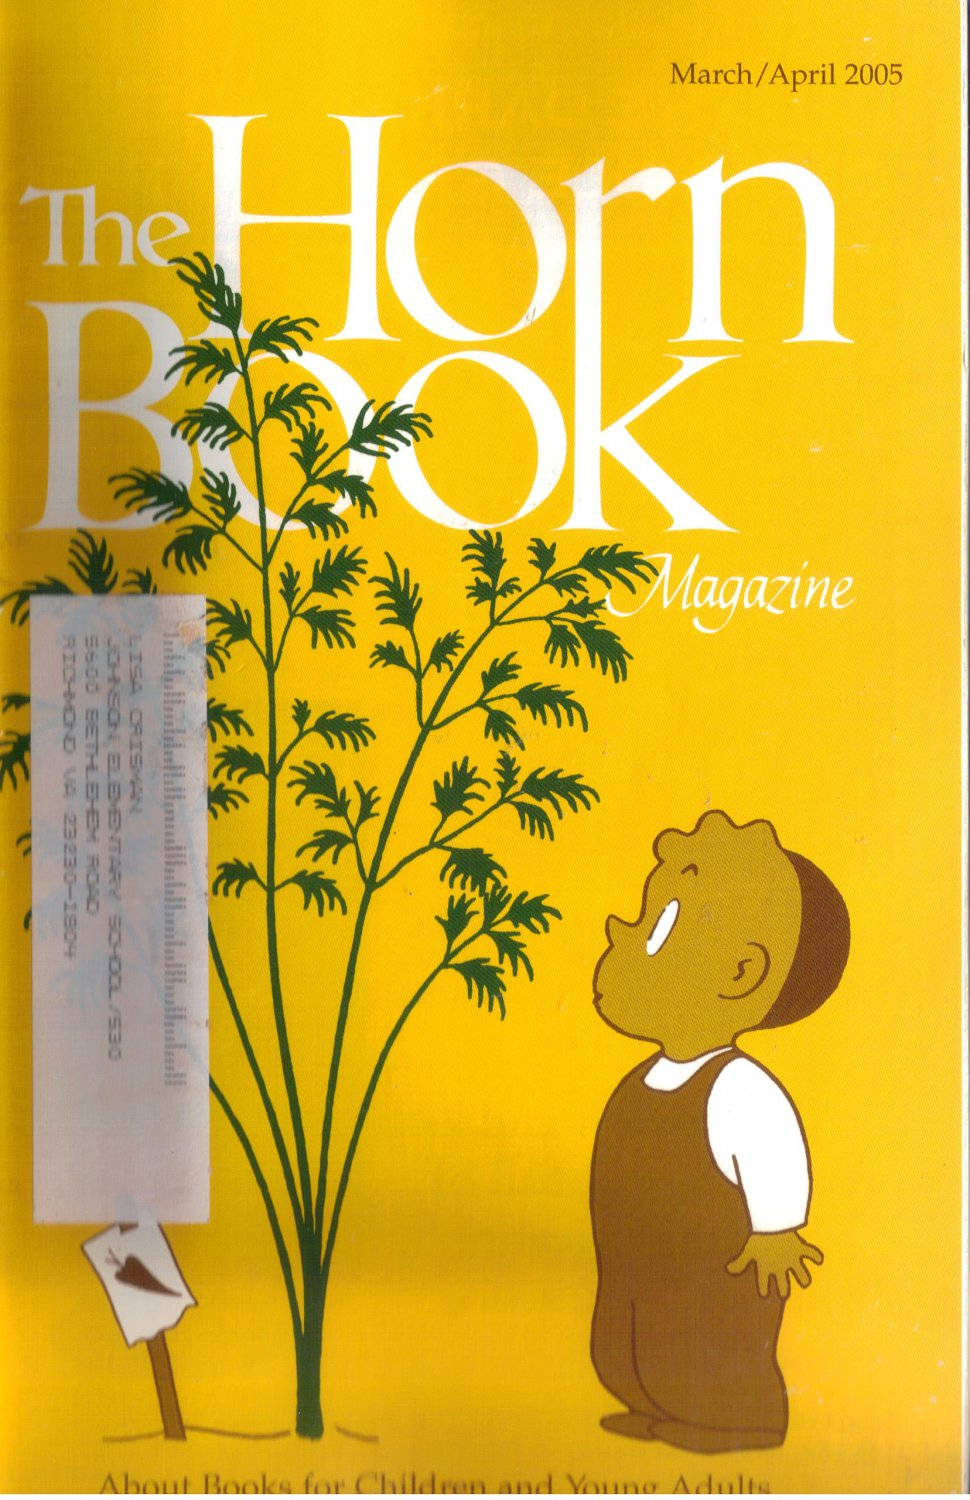 The Horn Book Magazine May June 2005 Volume 81 Issue 3 Douglas Florian mammalabilia cover art